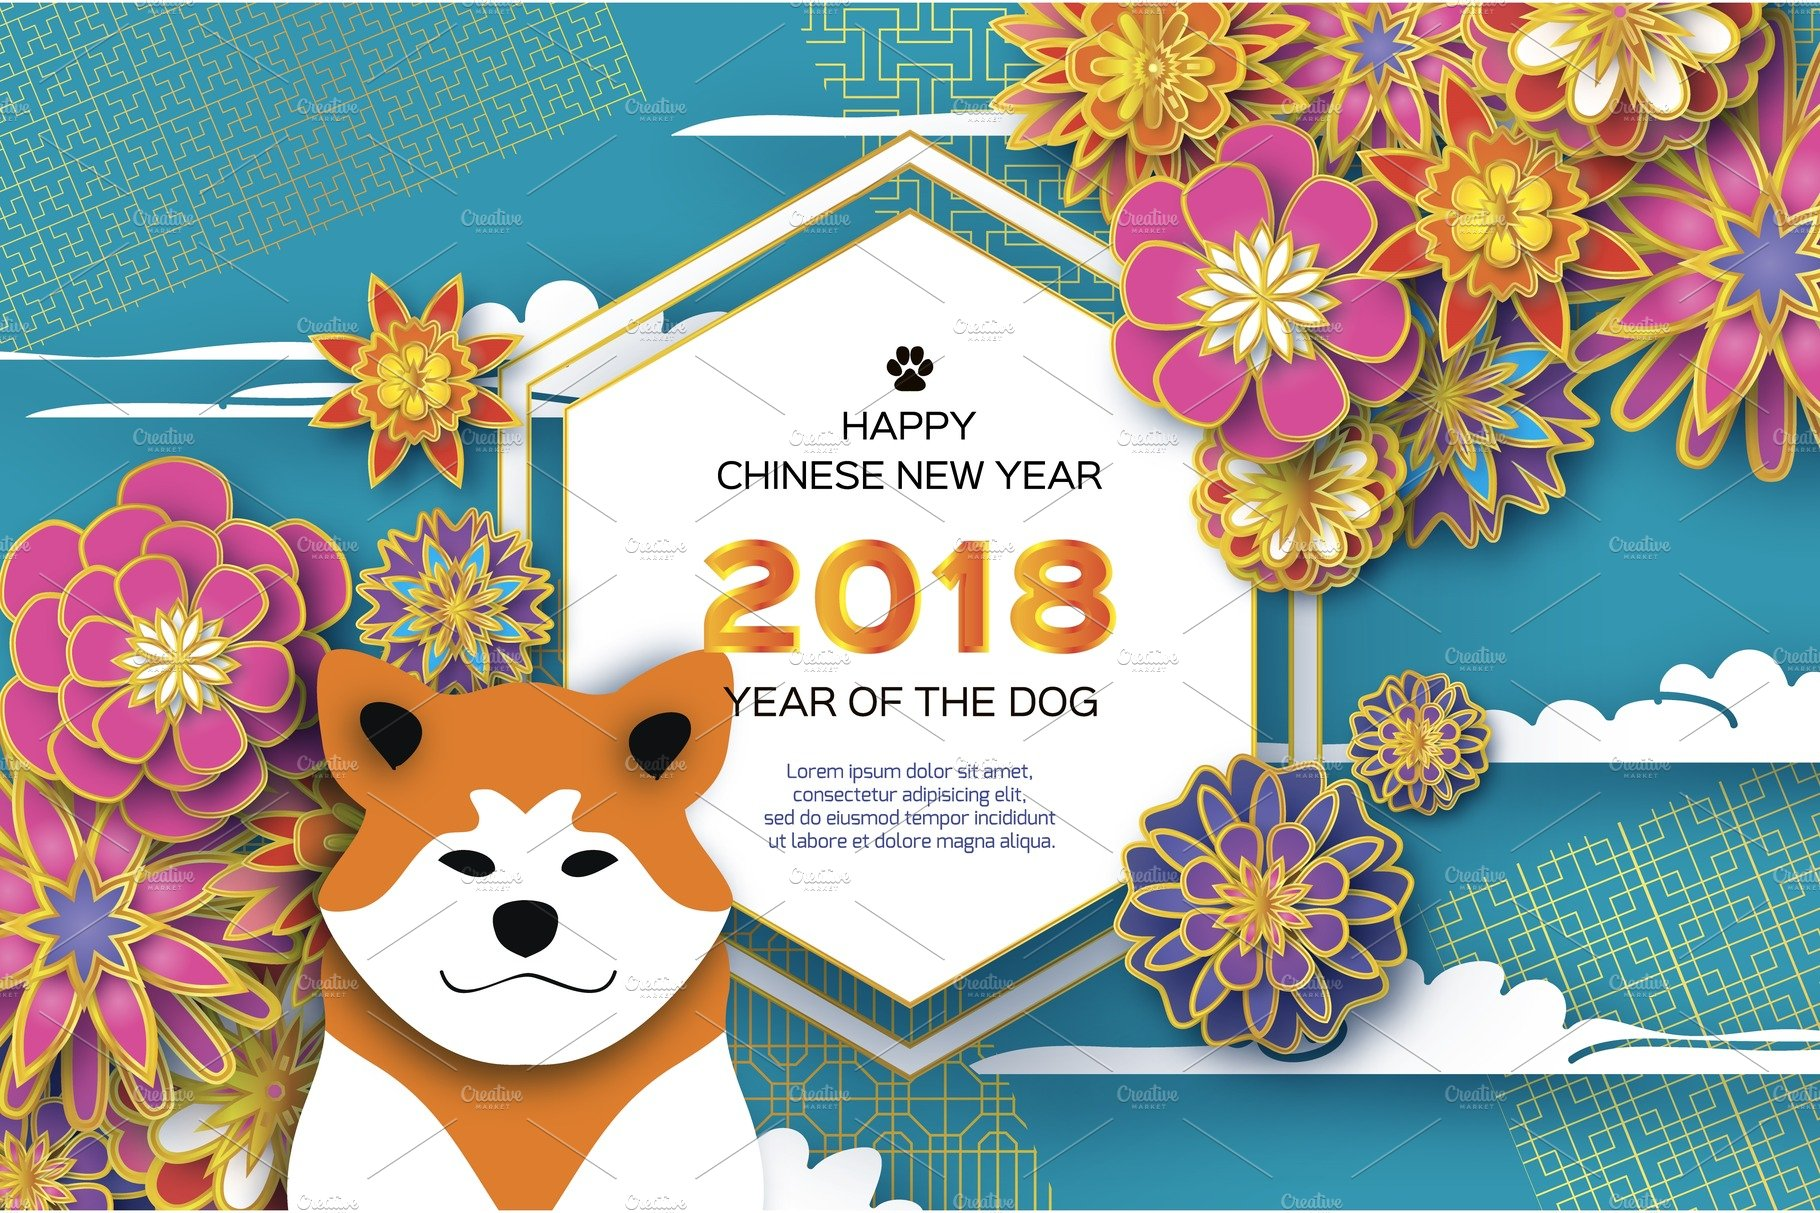 year of the dog 2018 happy chinese new year 2018